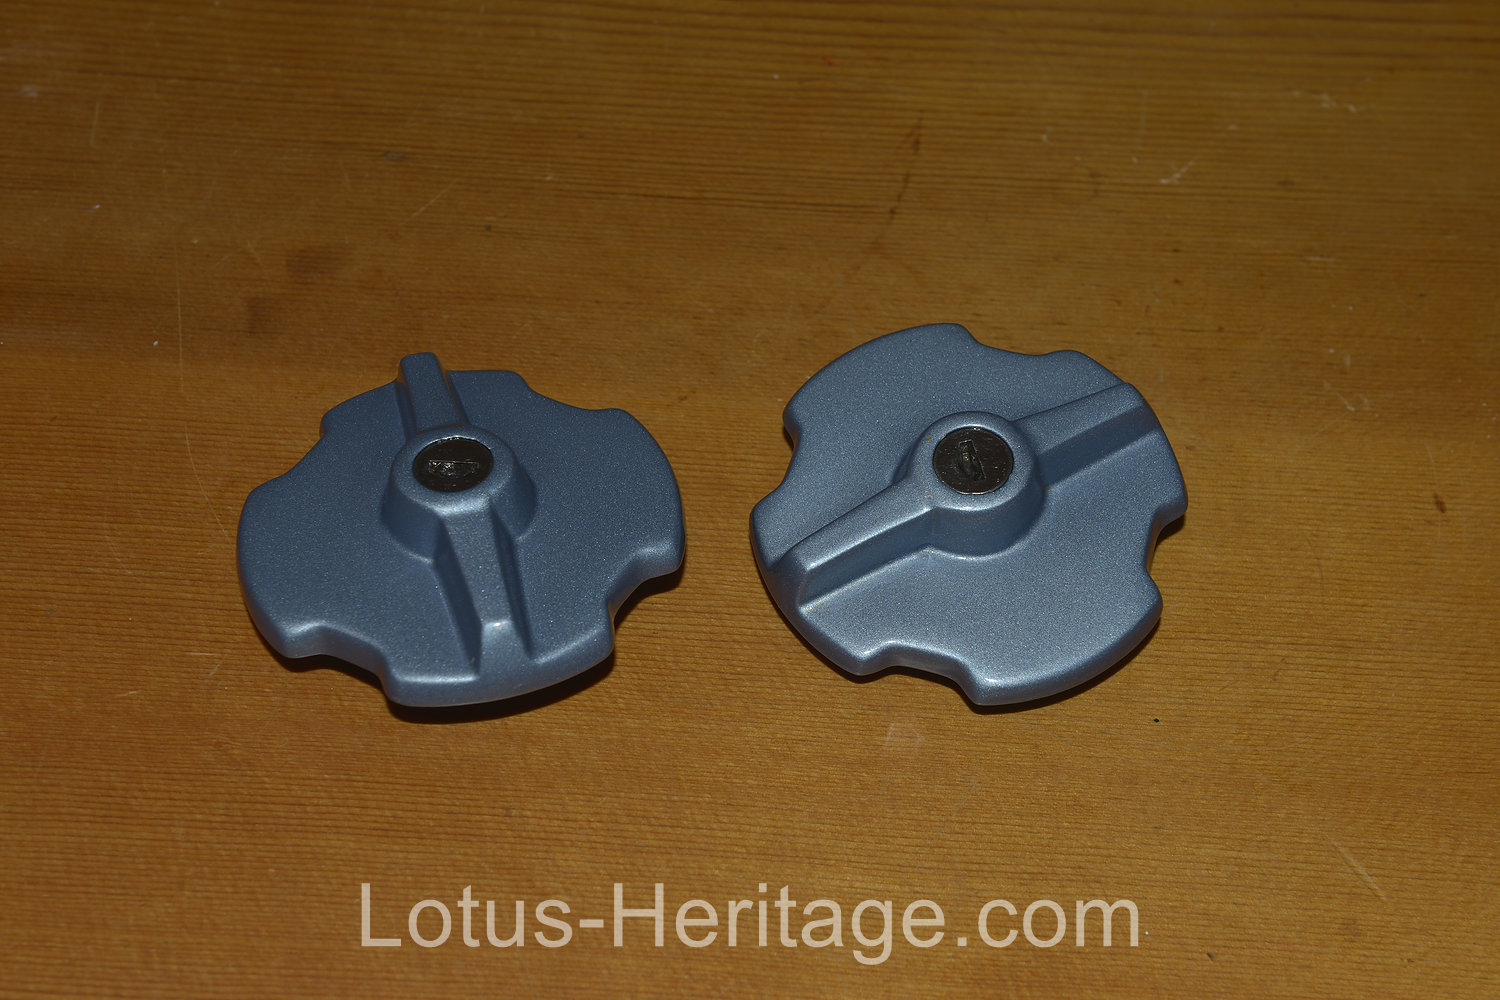 1986 Lotus Esprit Turbo fuel tank caps